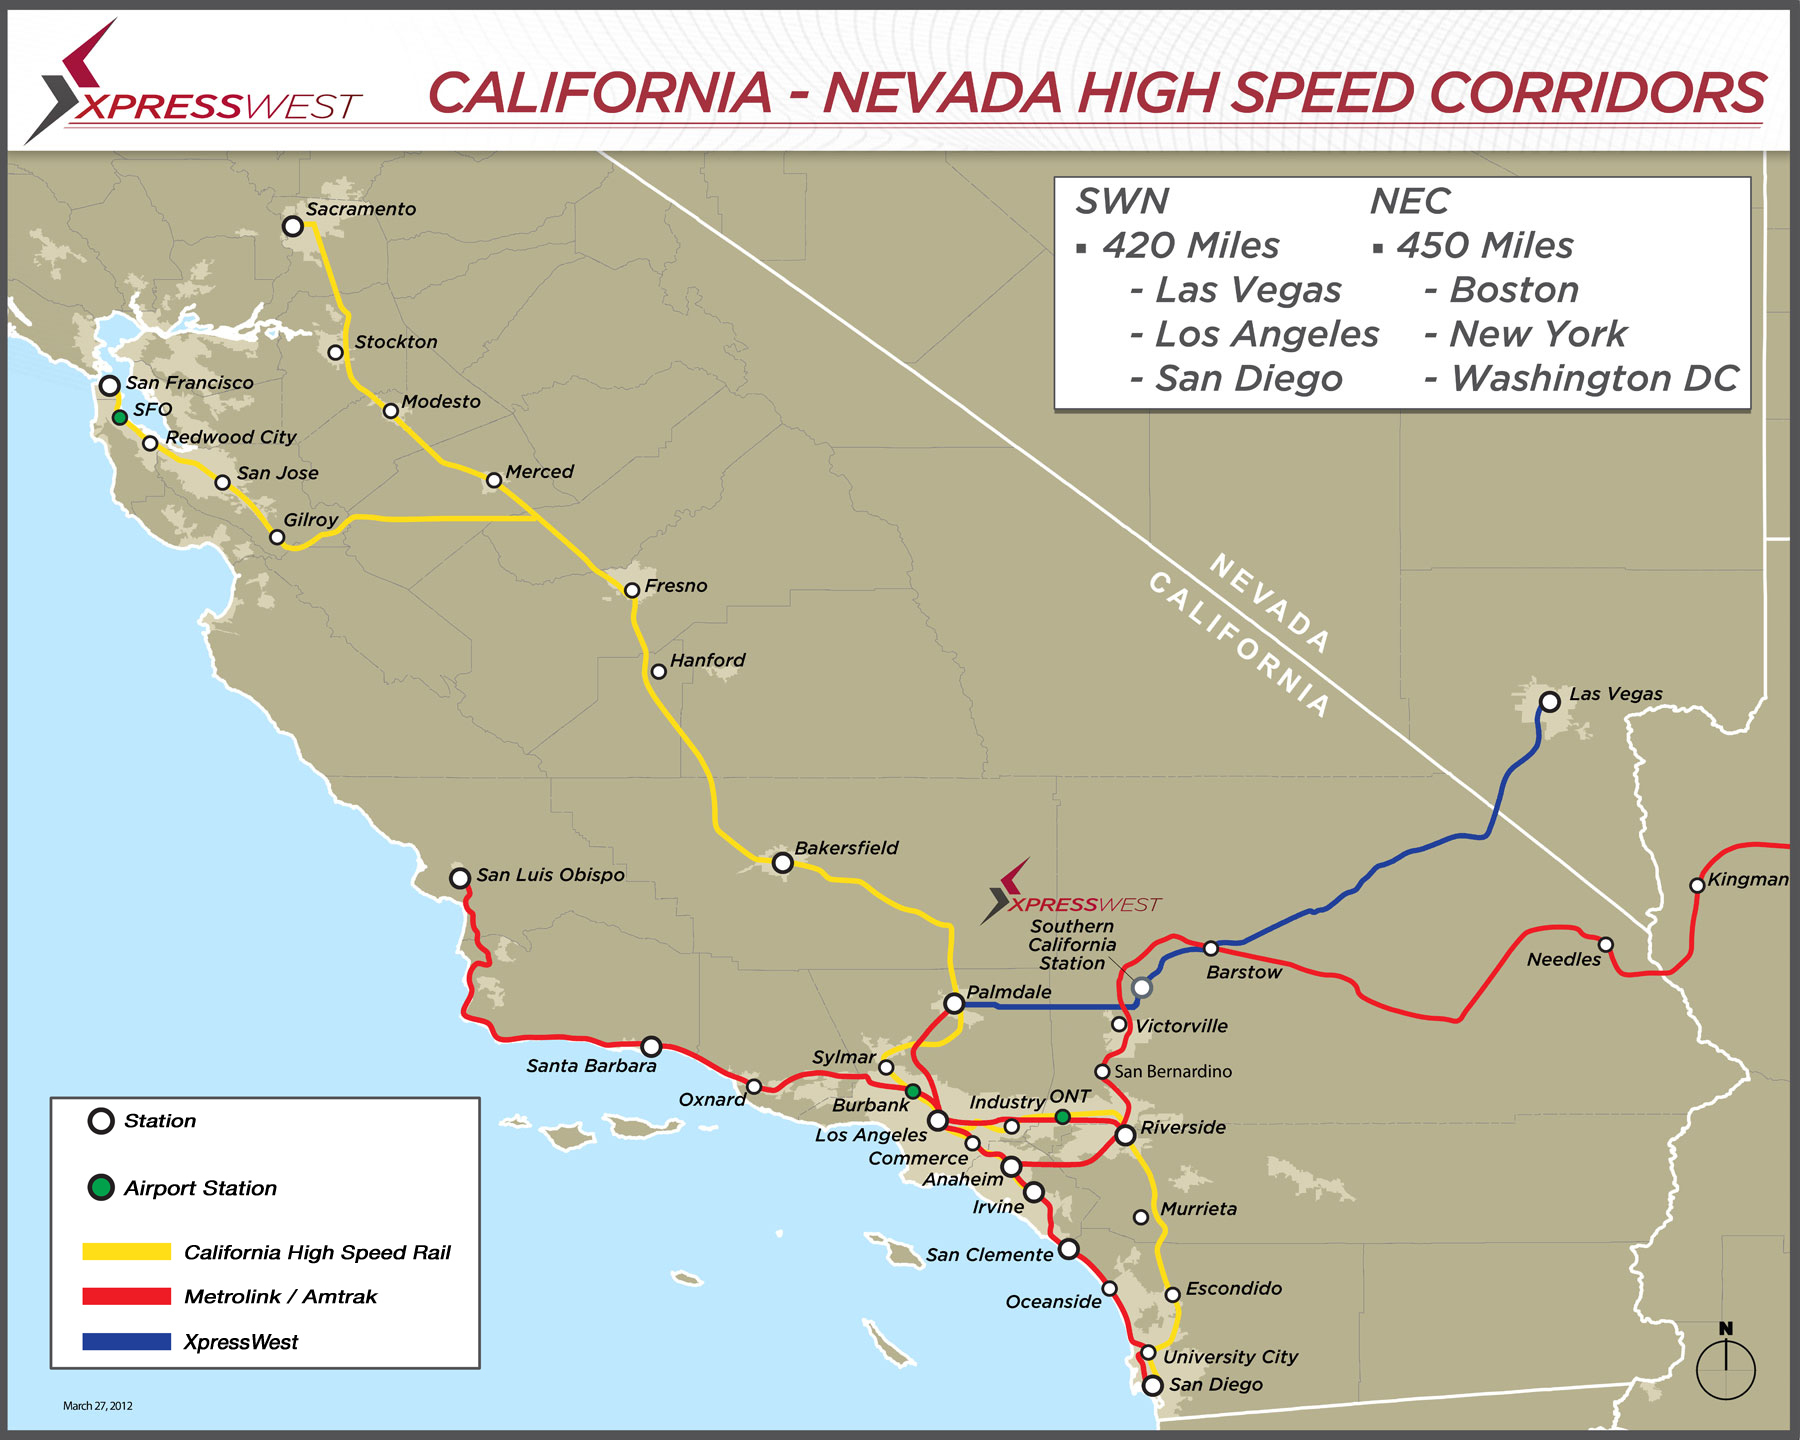 Expansion • Xpresswest Website - California High Speed Rail Project Map